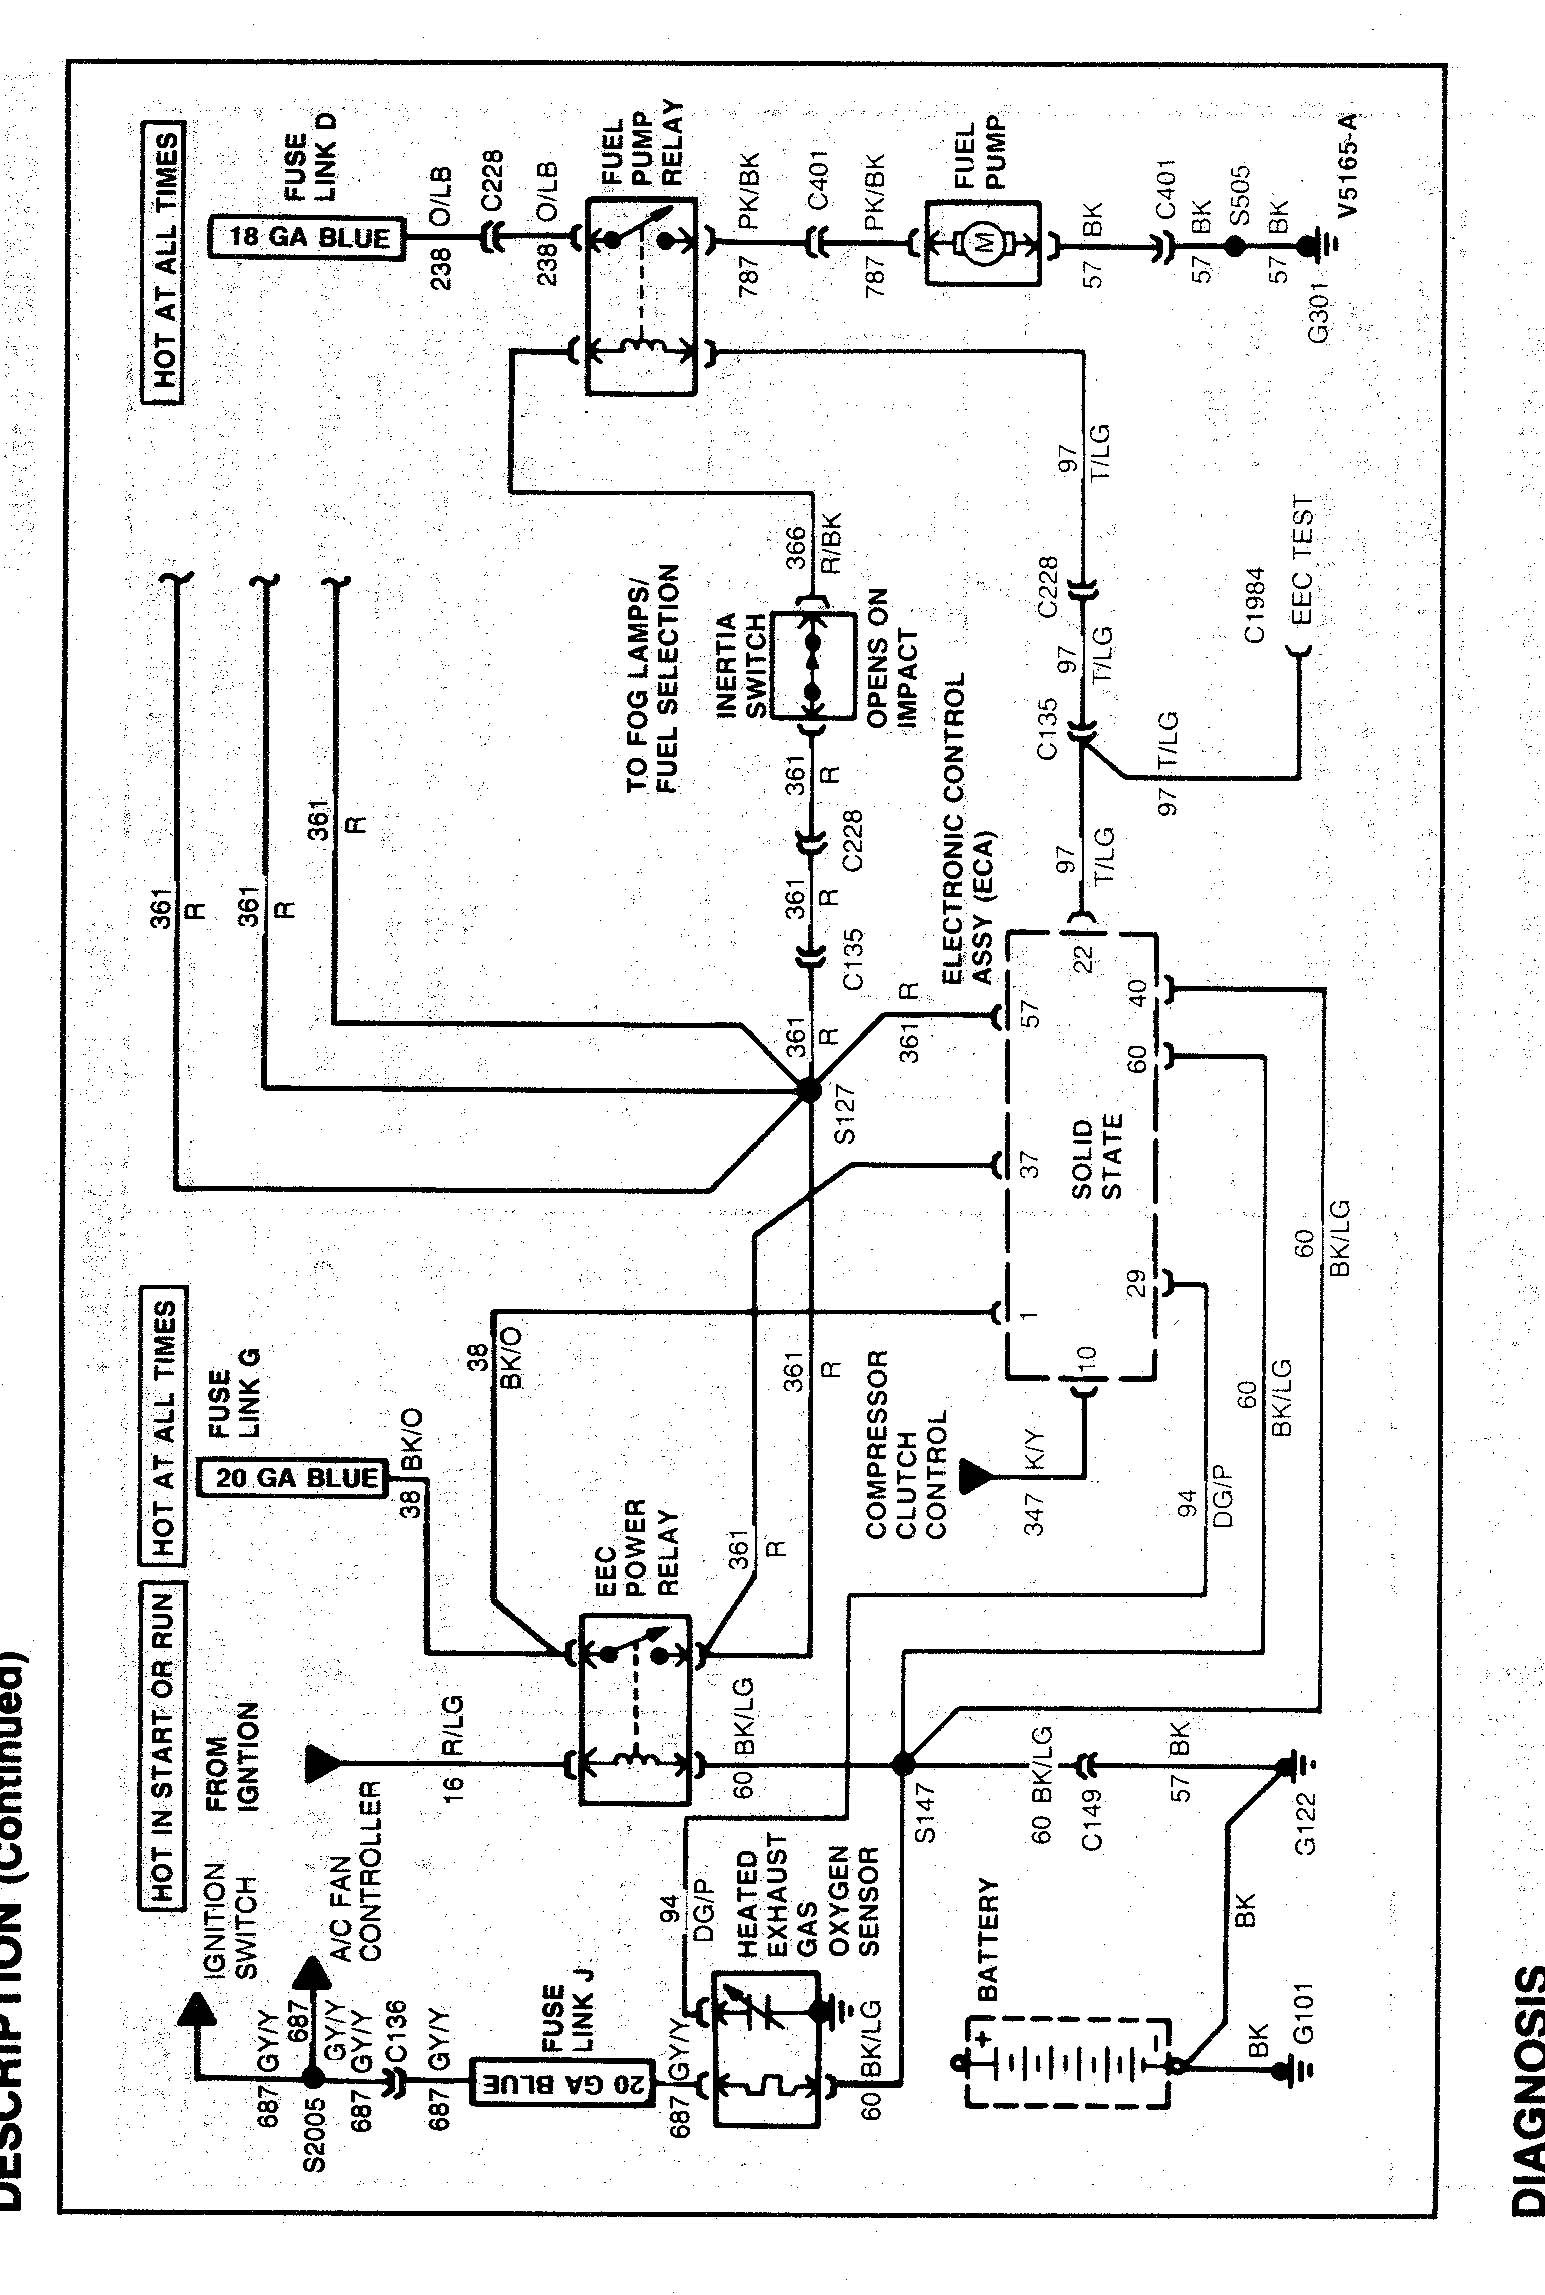 1995 ford mustang fuel pump wiring diagram